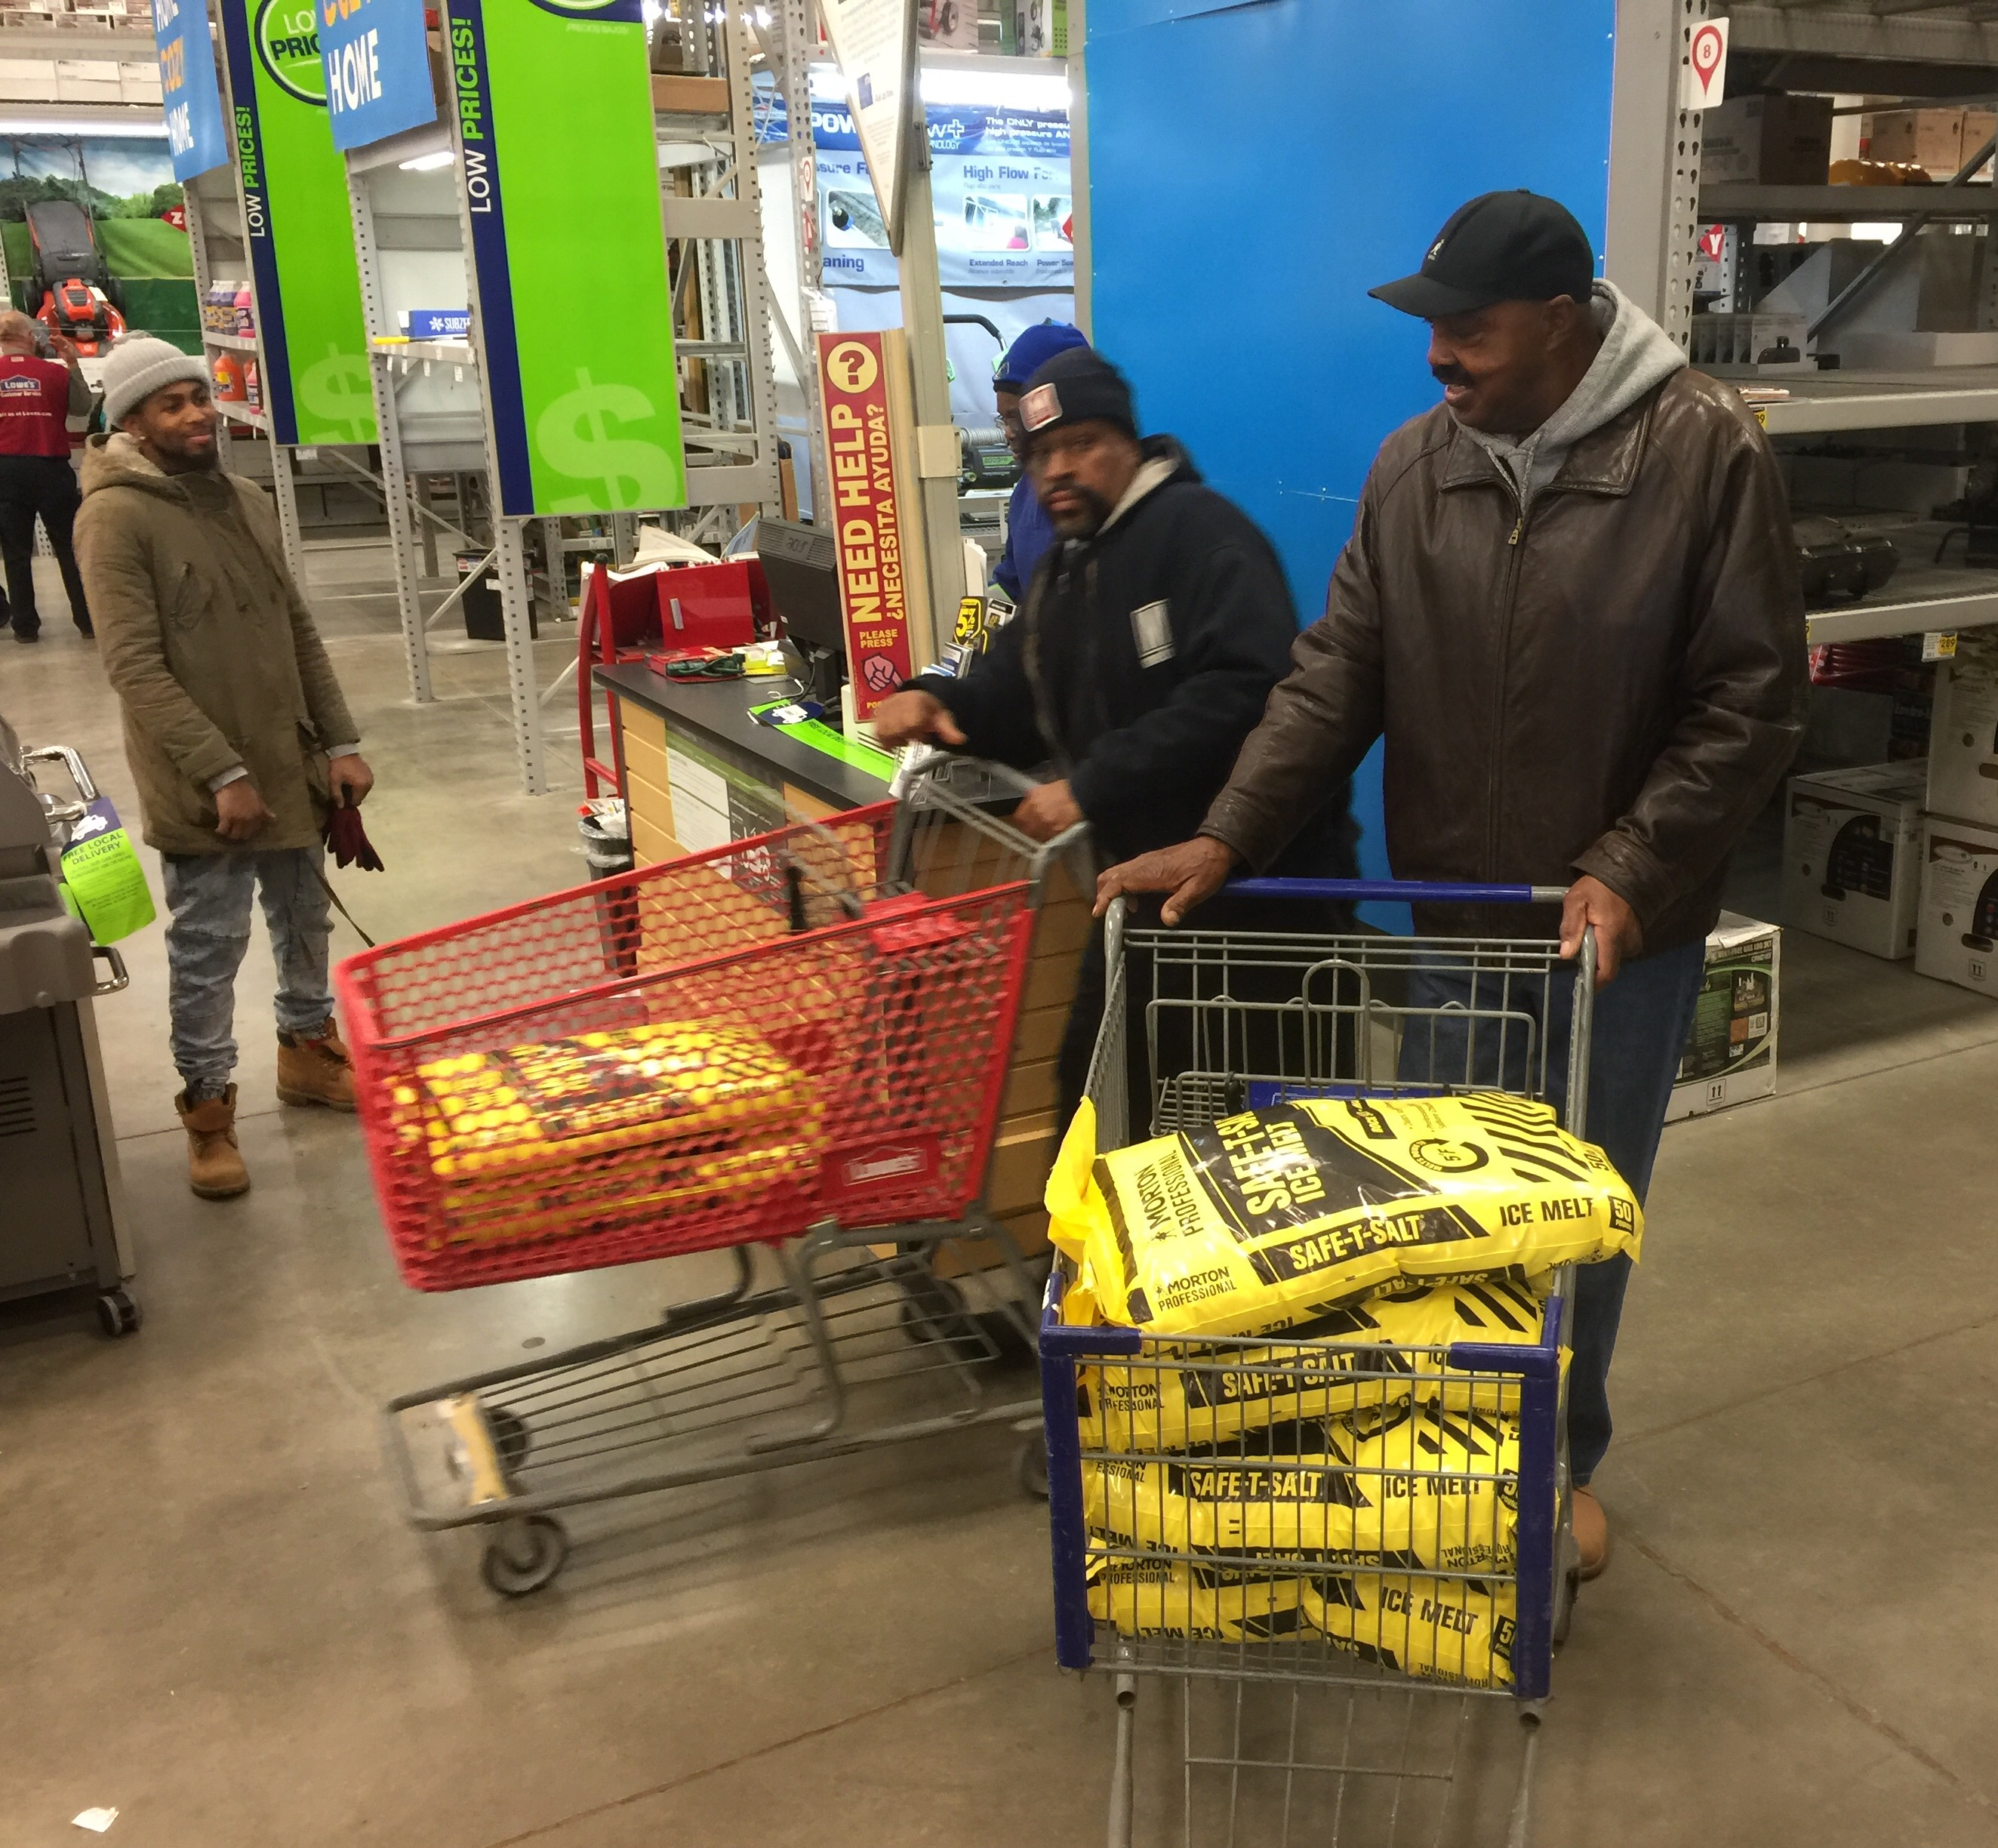 Prestorm shoppers clearing out local hardware store (Photos)